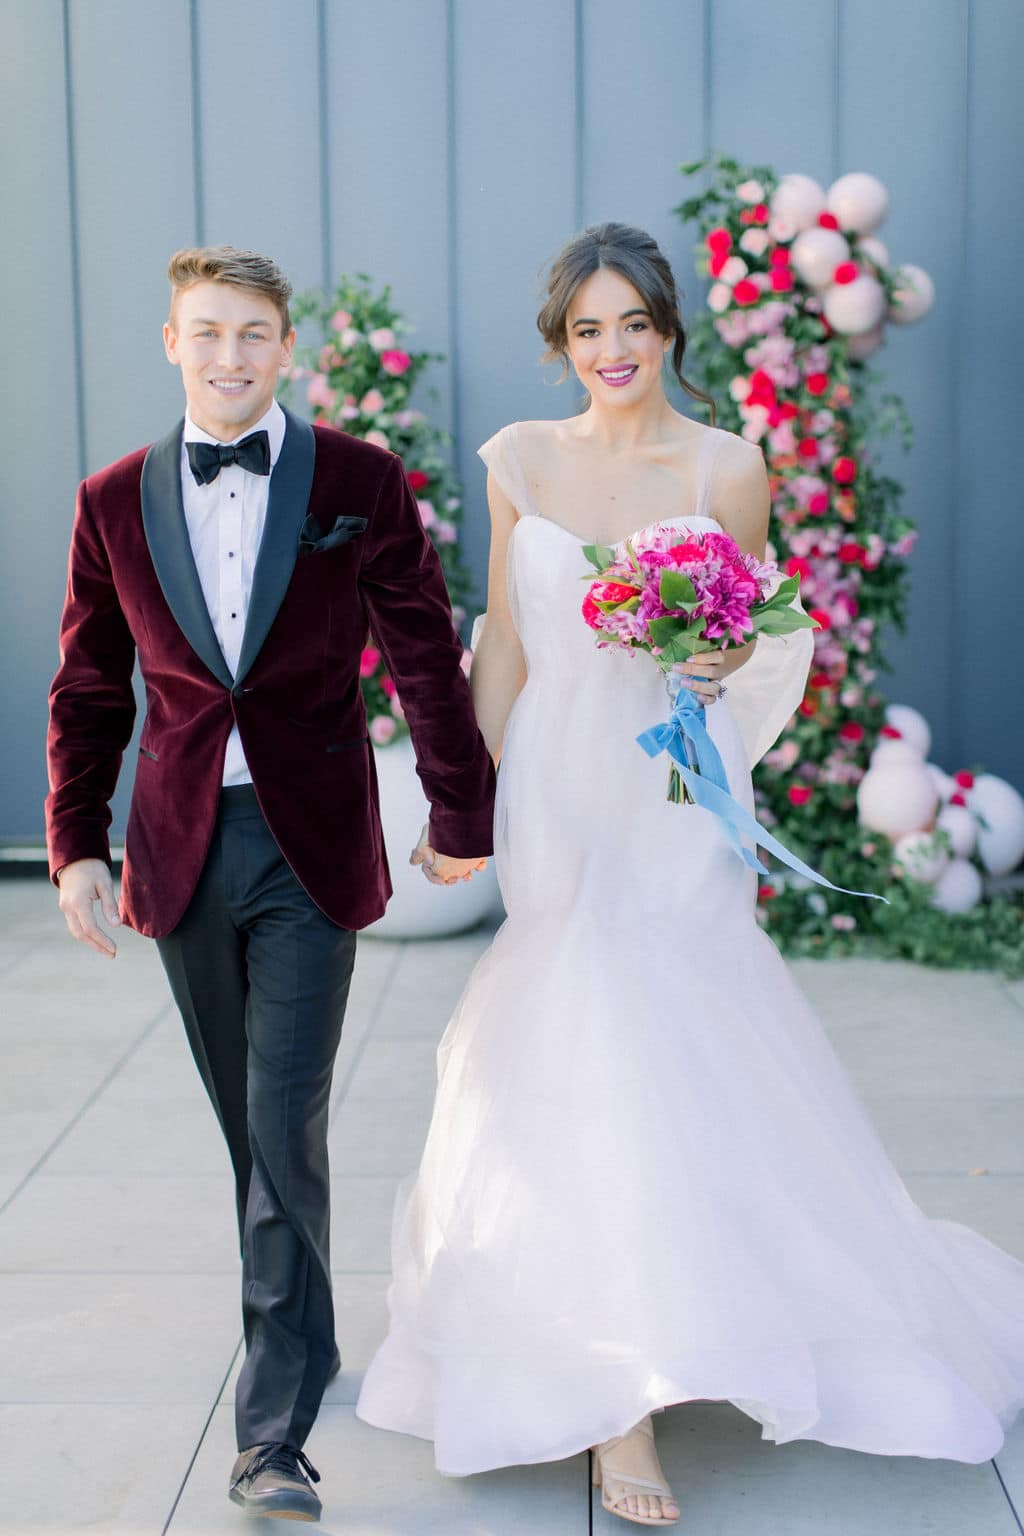 groom and bride walking and the bride's bouquet is fully shown with pink roses and a blue ribbon